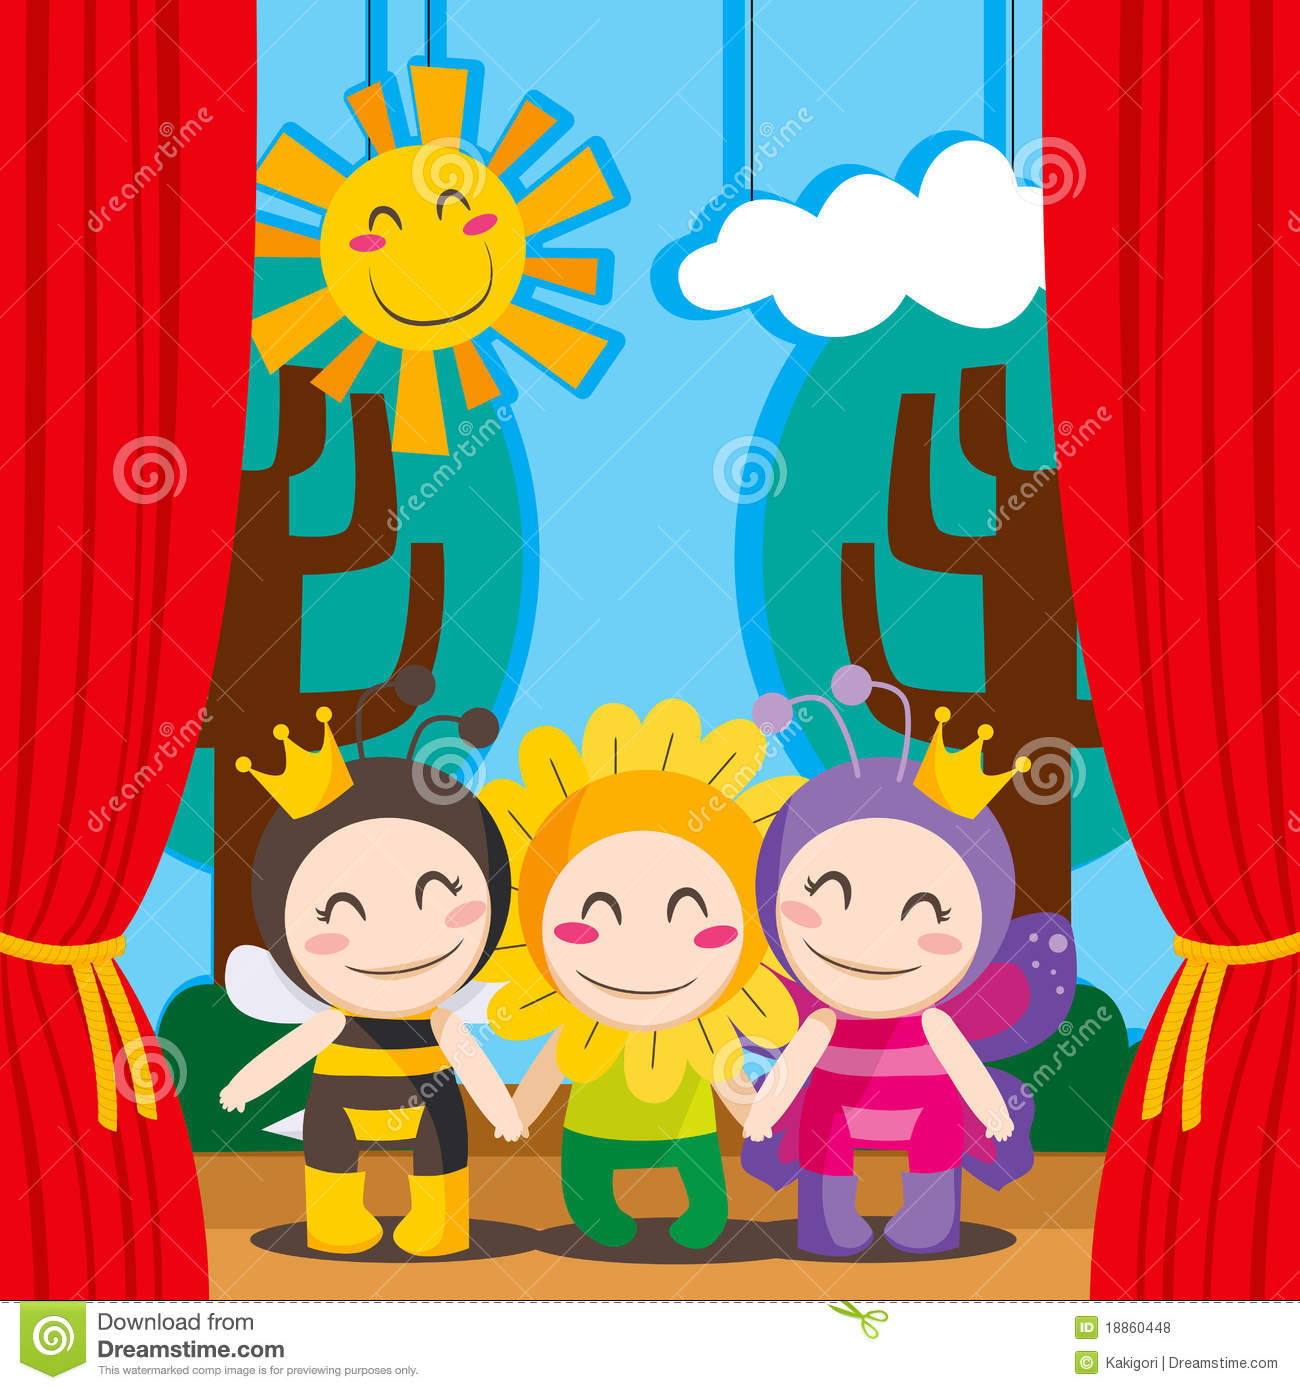 Image Result For Theatre Curtains Clipart